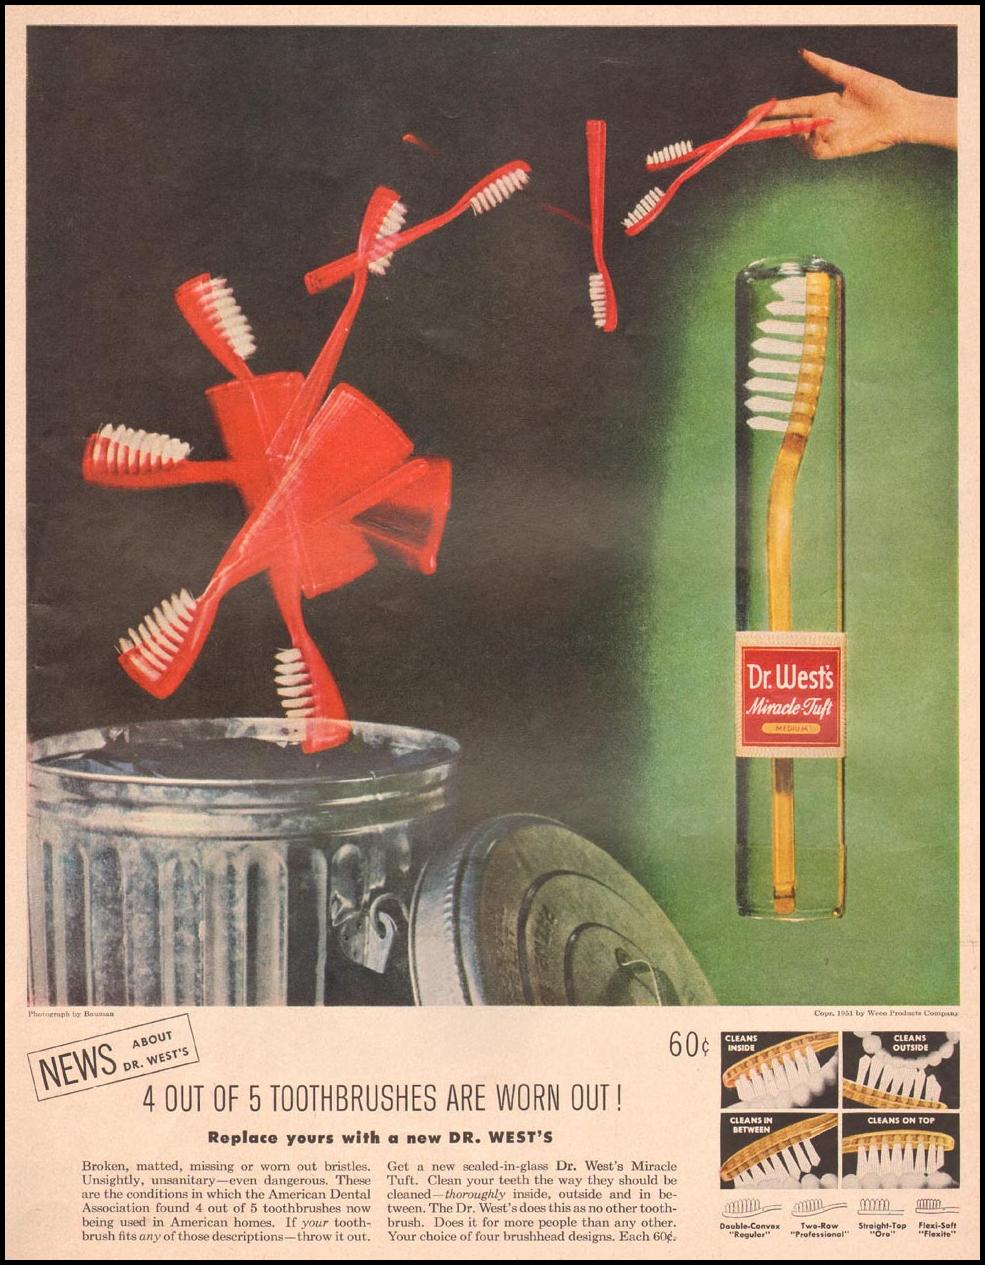 DR. WEST'S MIRACLE-TUFT TOOTHBRUSH LIFE 09/03/1951 p. 39